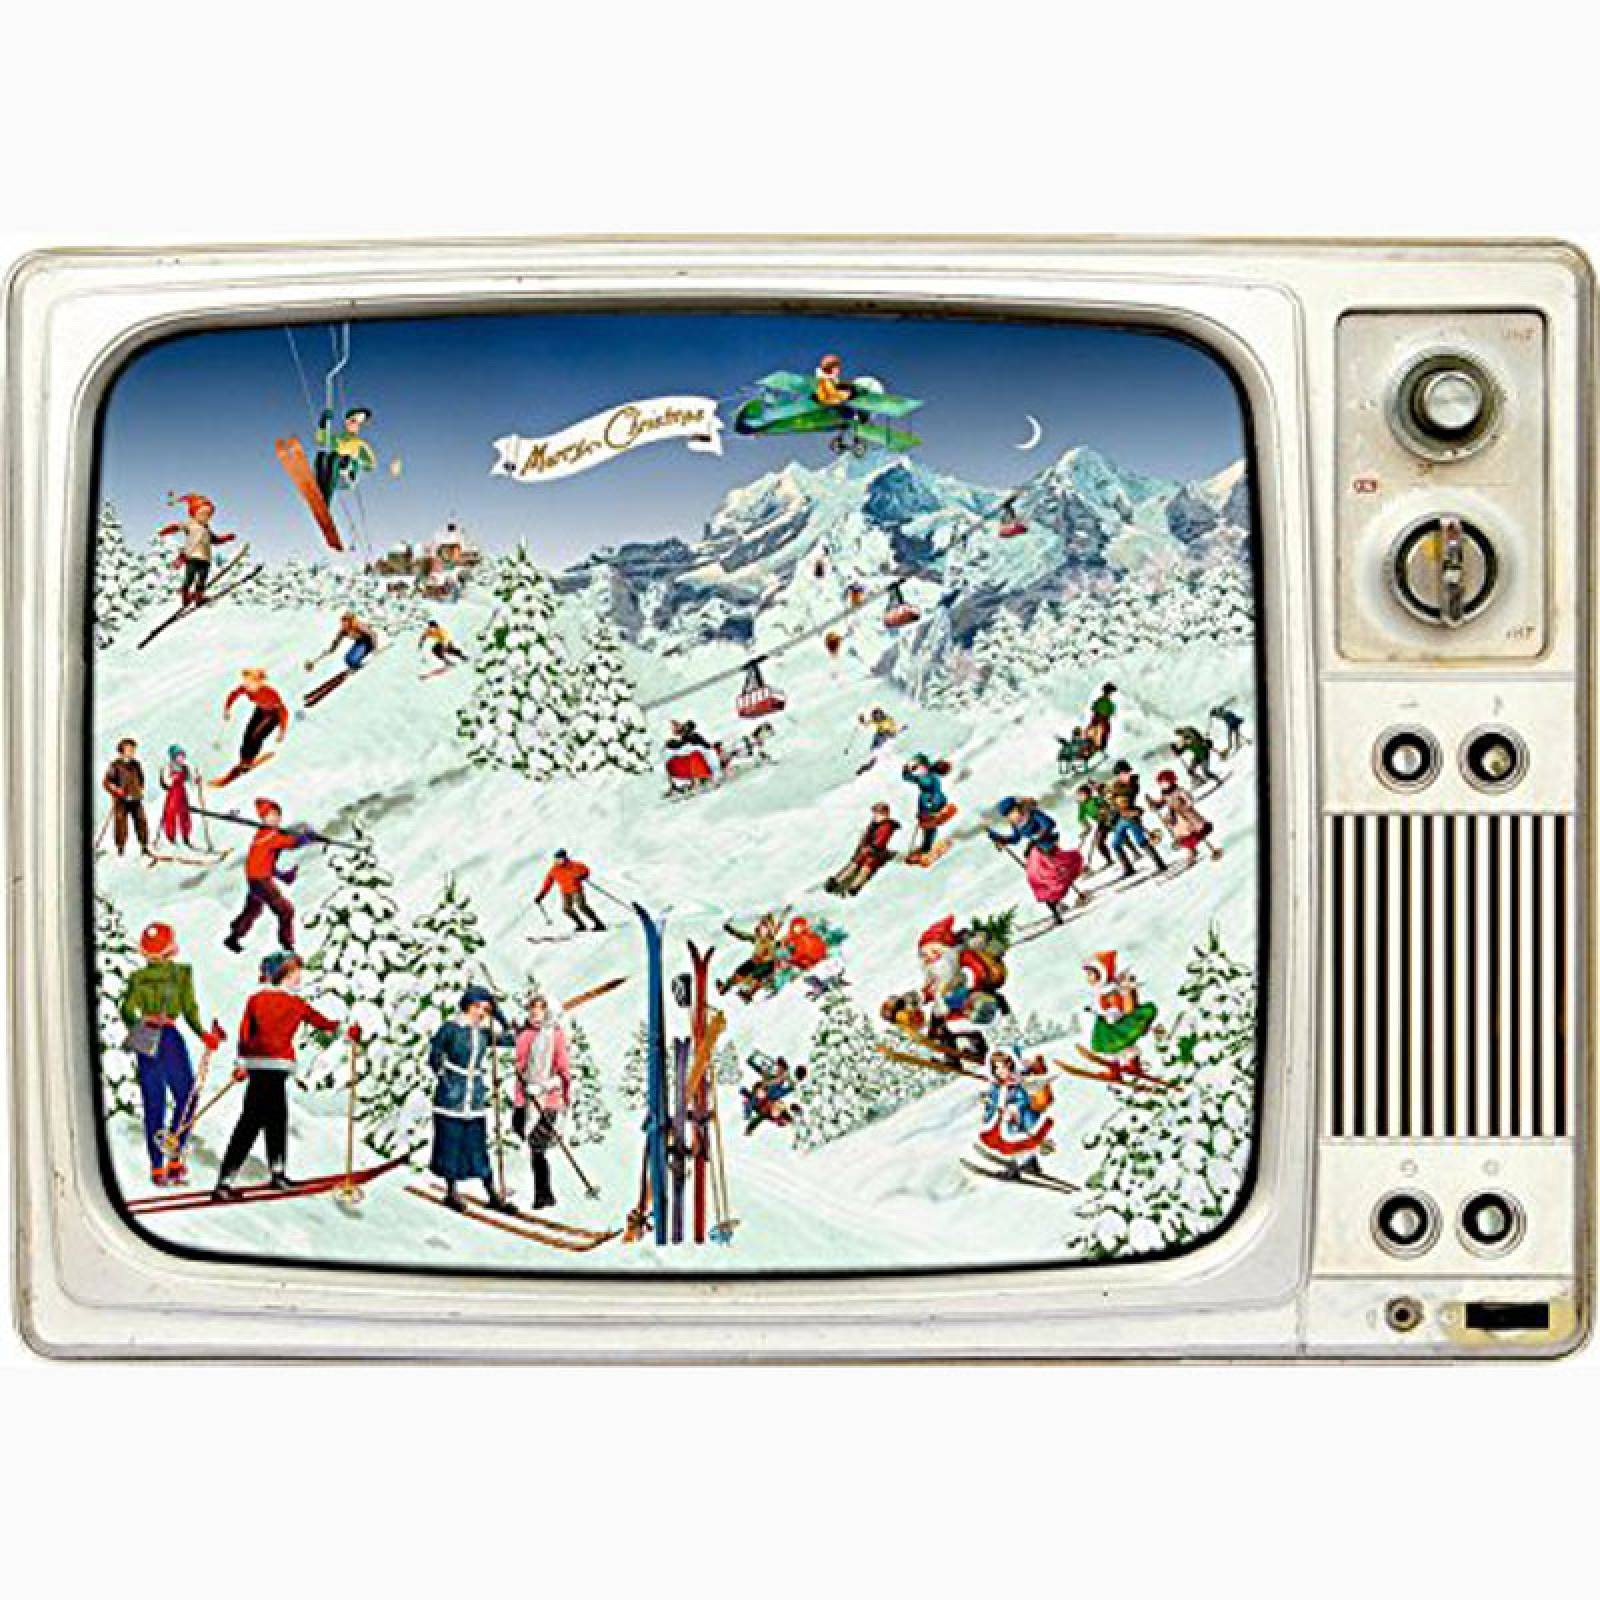 Skiing On The Retro TV Advent Calendar